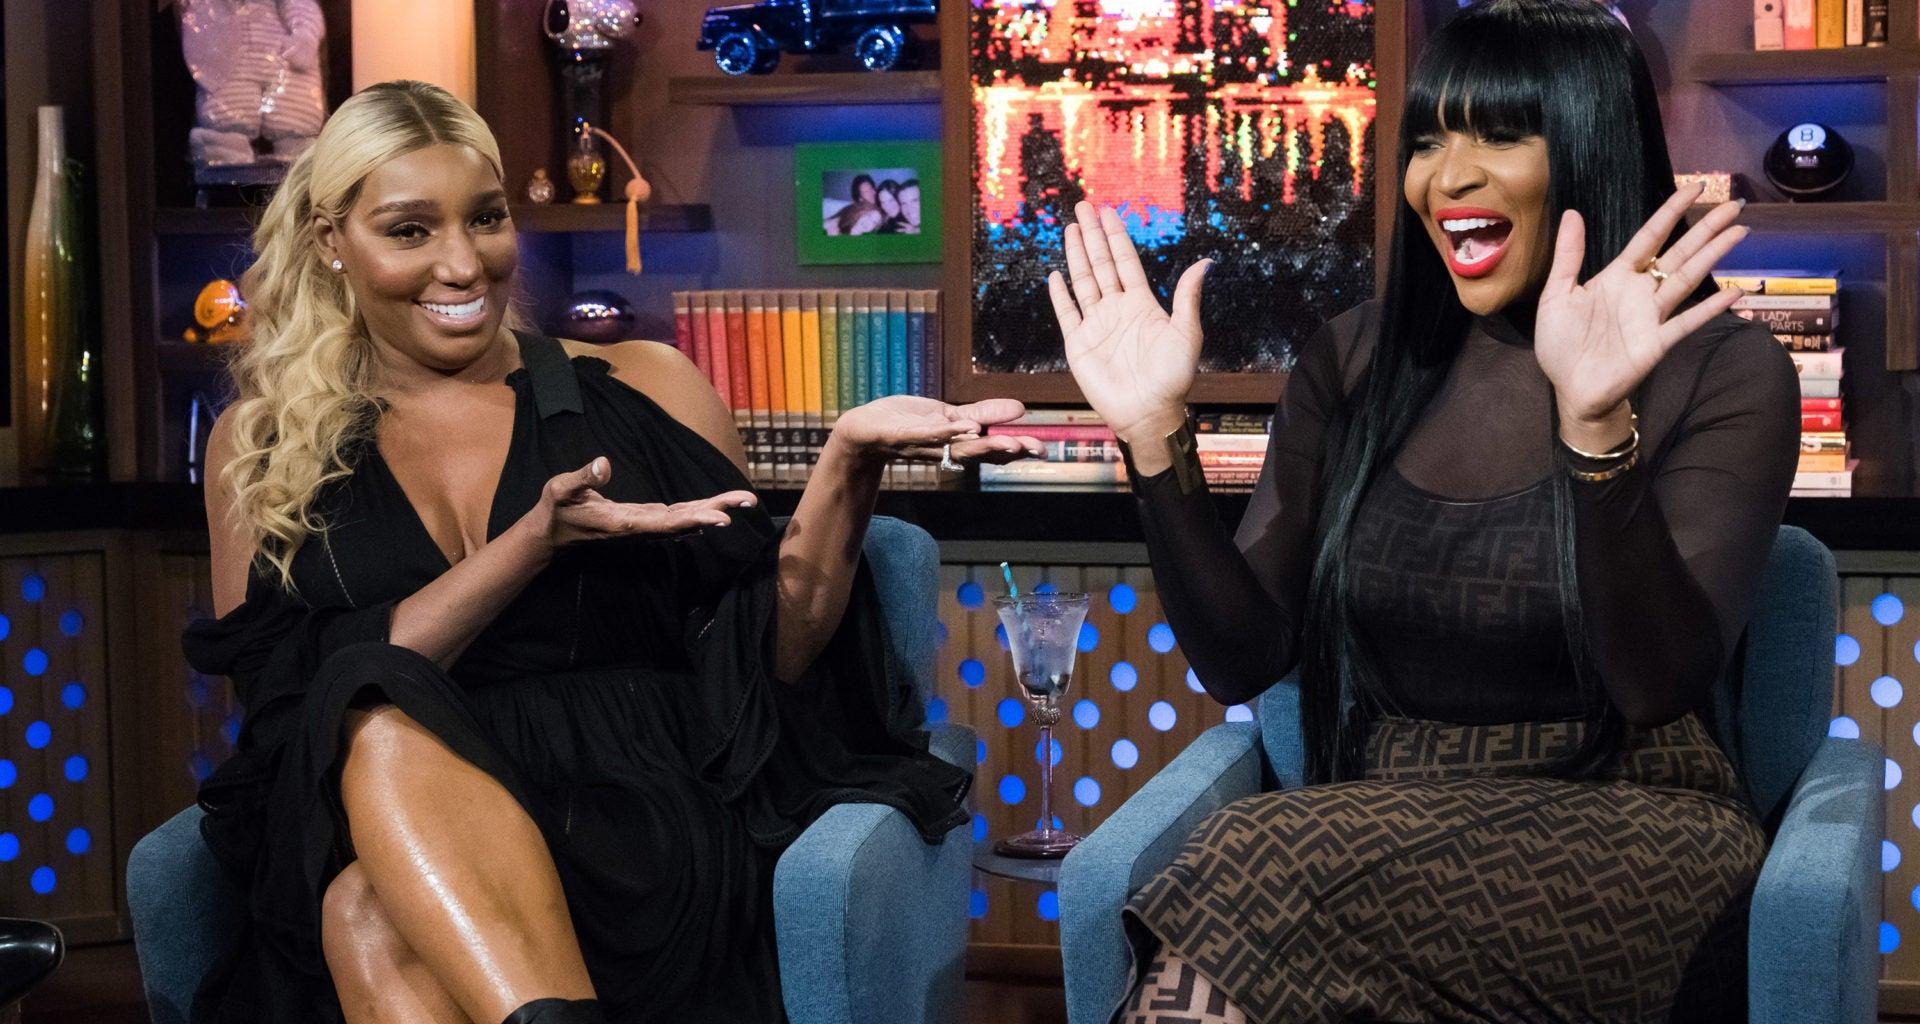 NeNe Leakes Shares A Behind The Scene Photo From The RHOA Set With Marlo Hampton - Fans Say Marlo Looks 21!